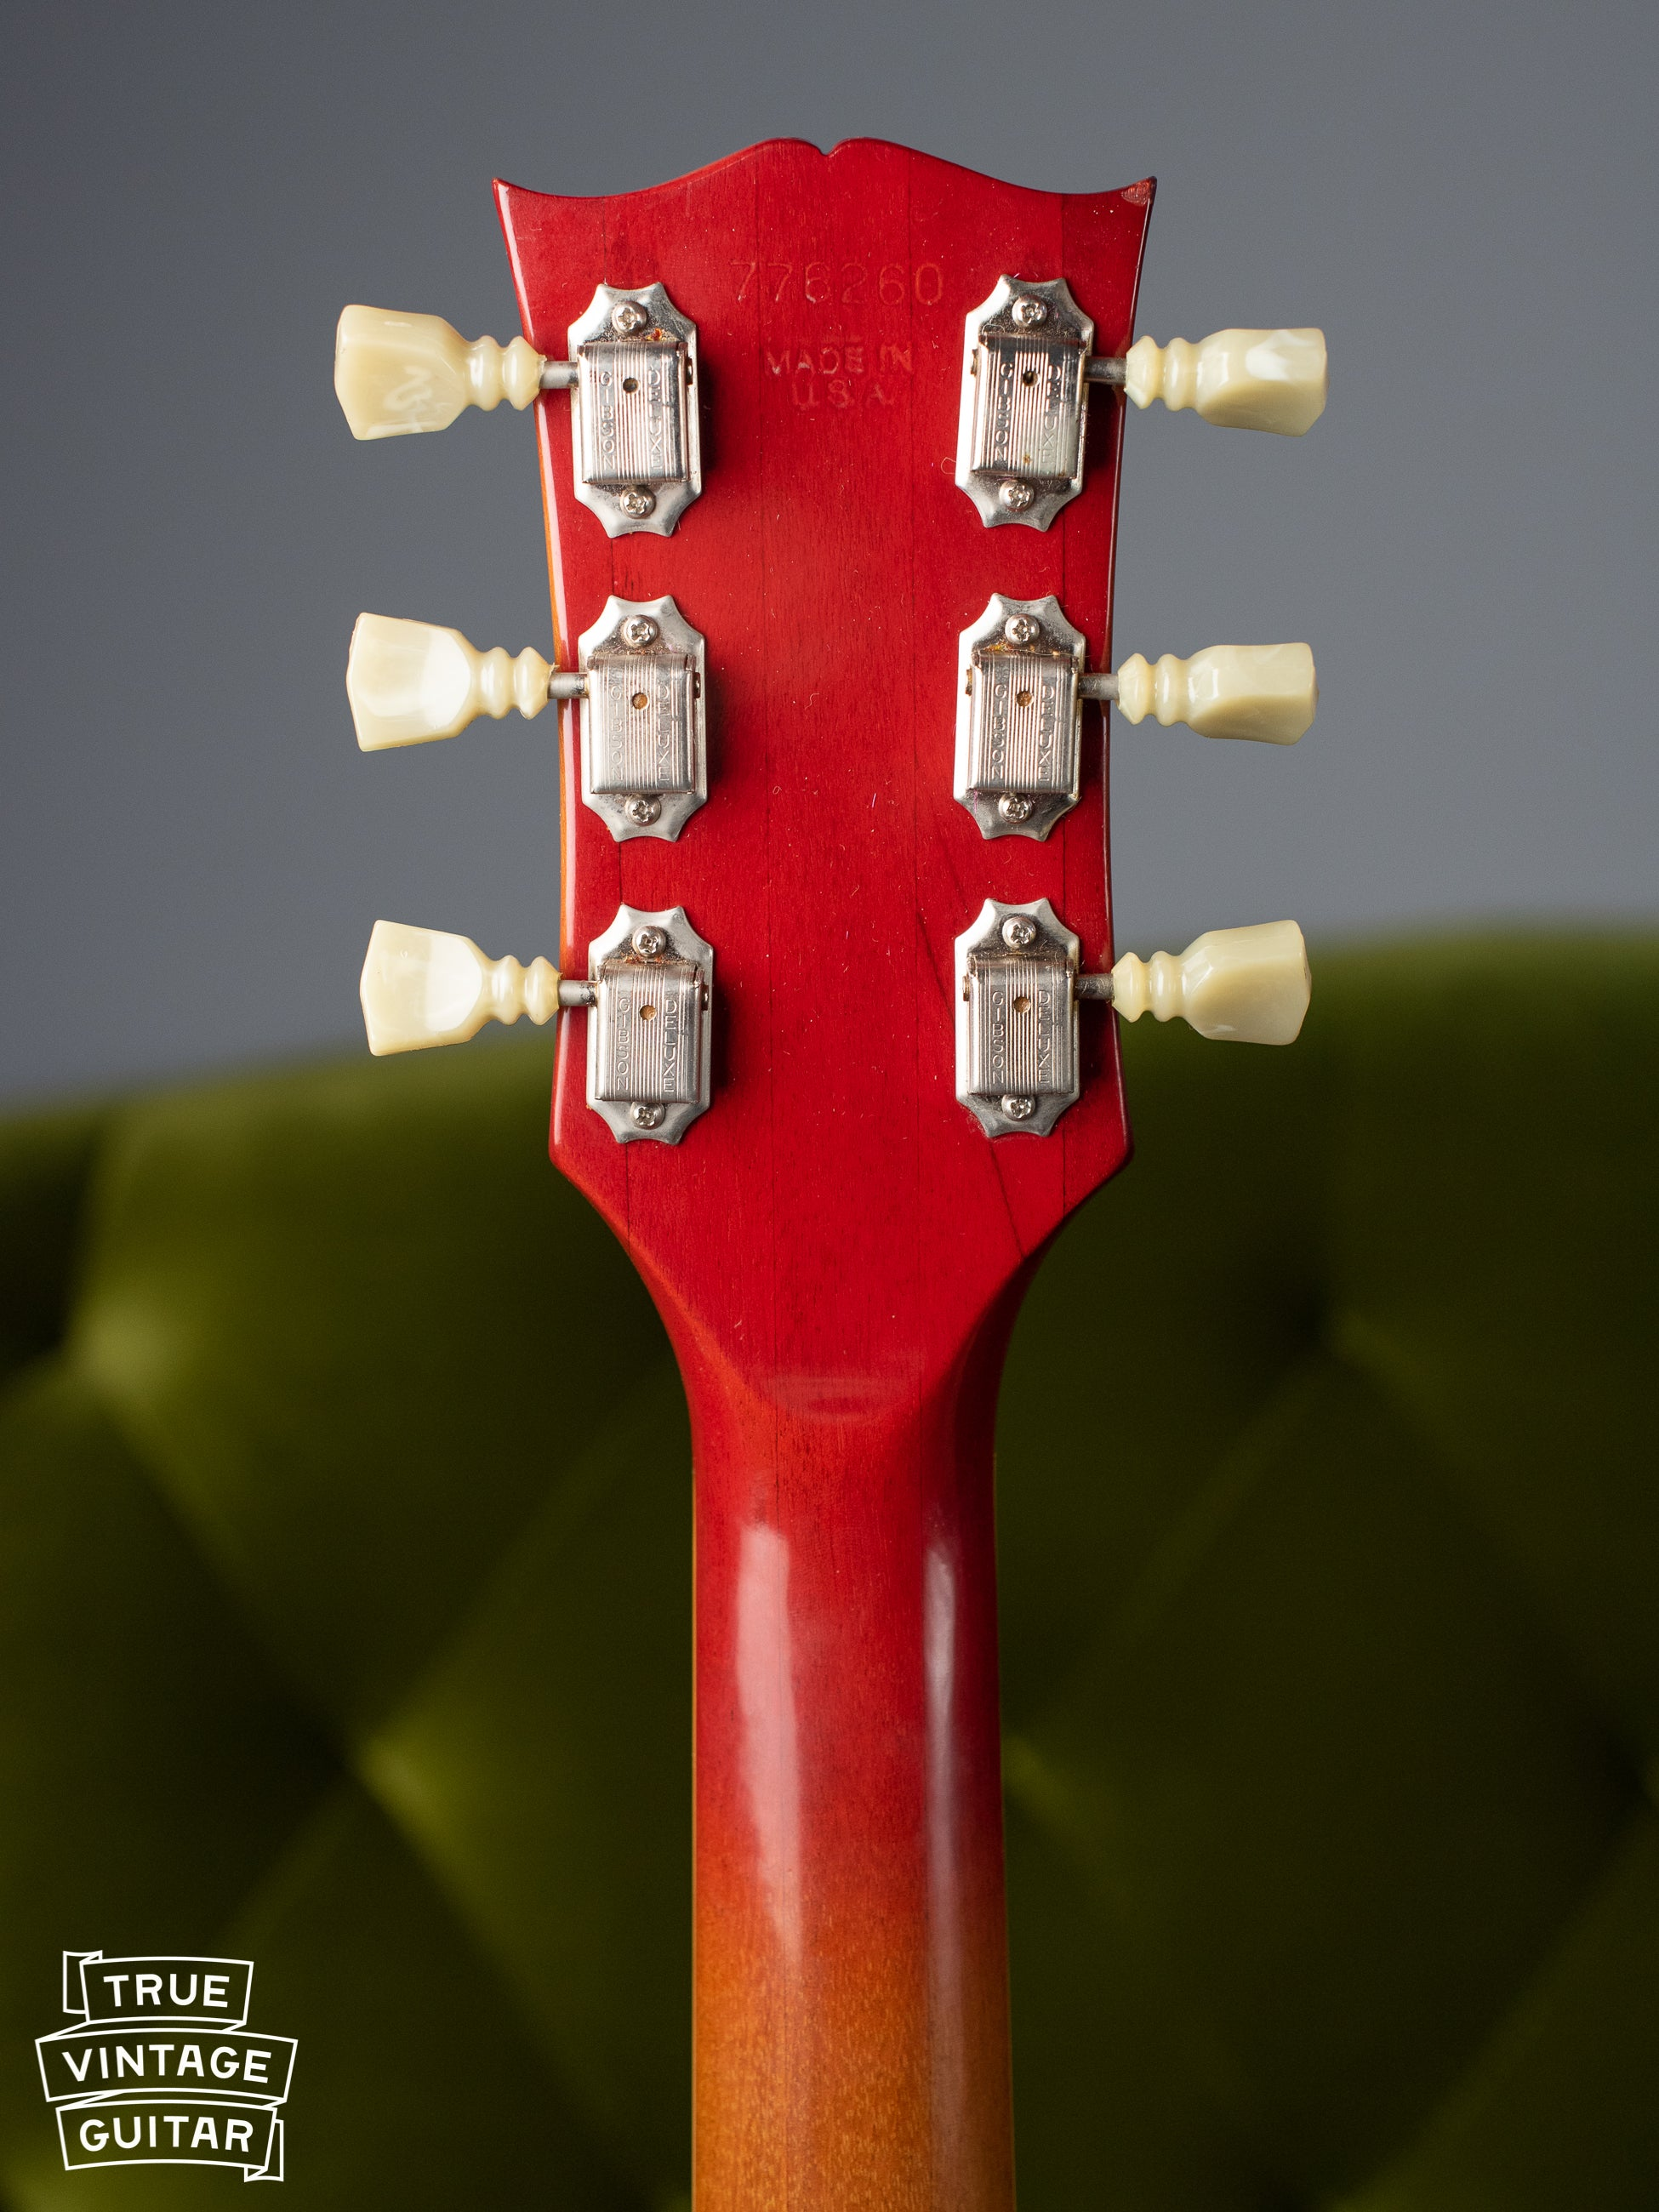 How to date gibson SG guitar